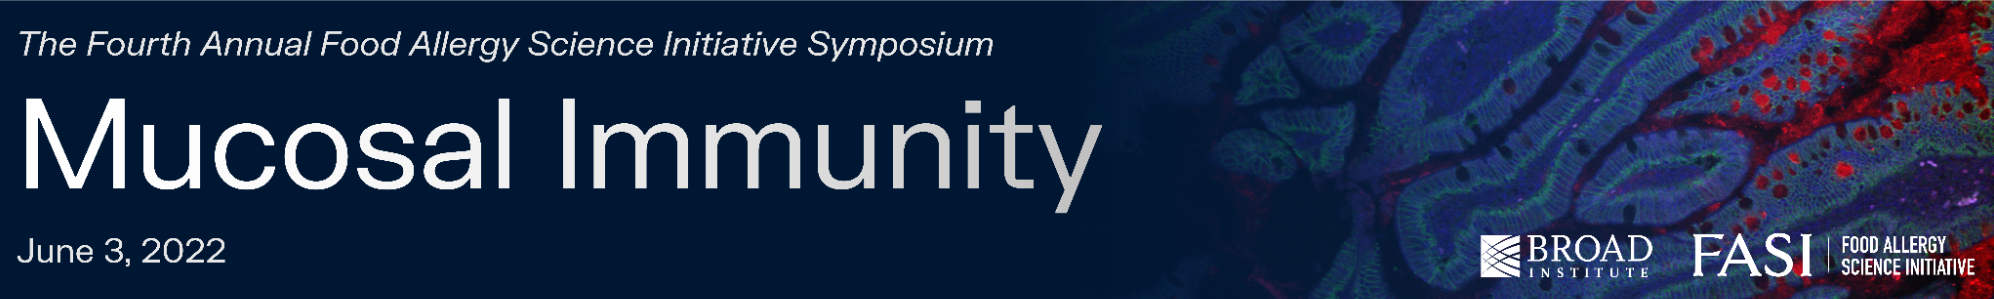 The Food Allergy Science Initiative 4th Annual Symposium Mucosal Immunity Friday, June 3rd, 2022